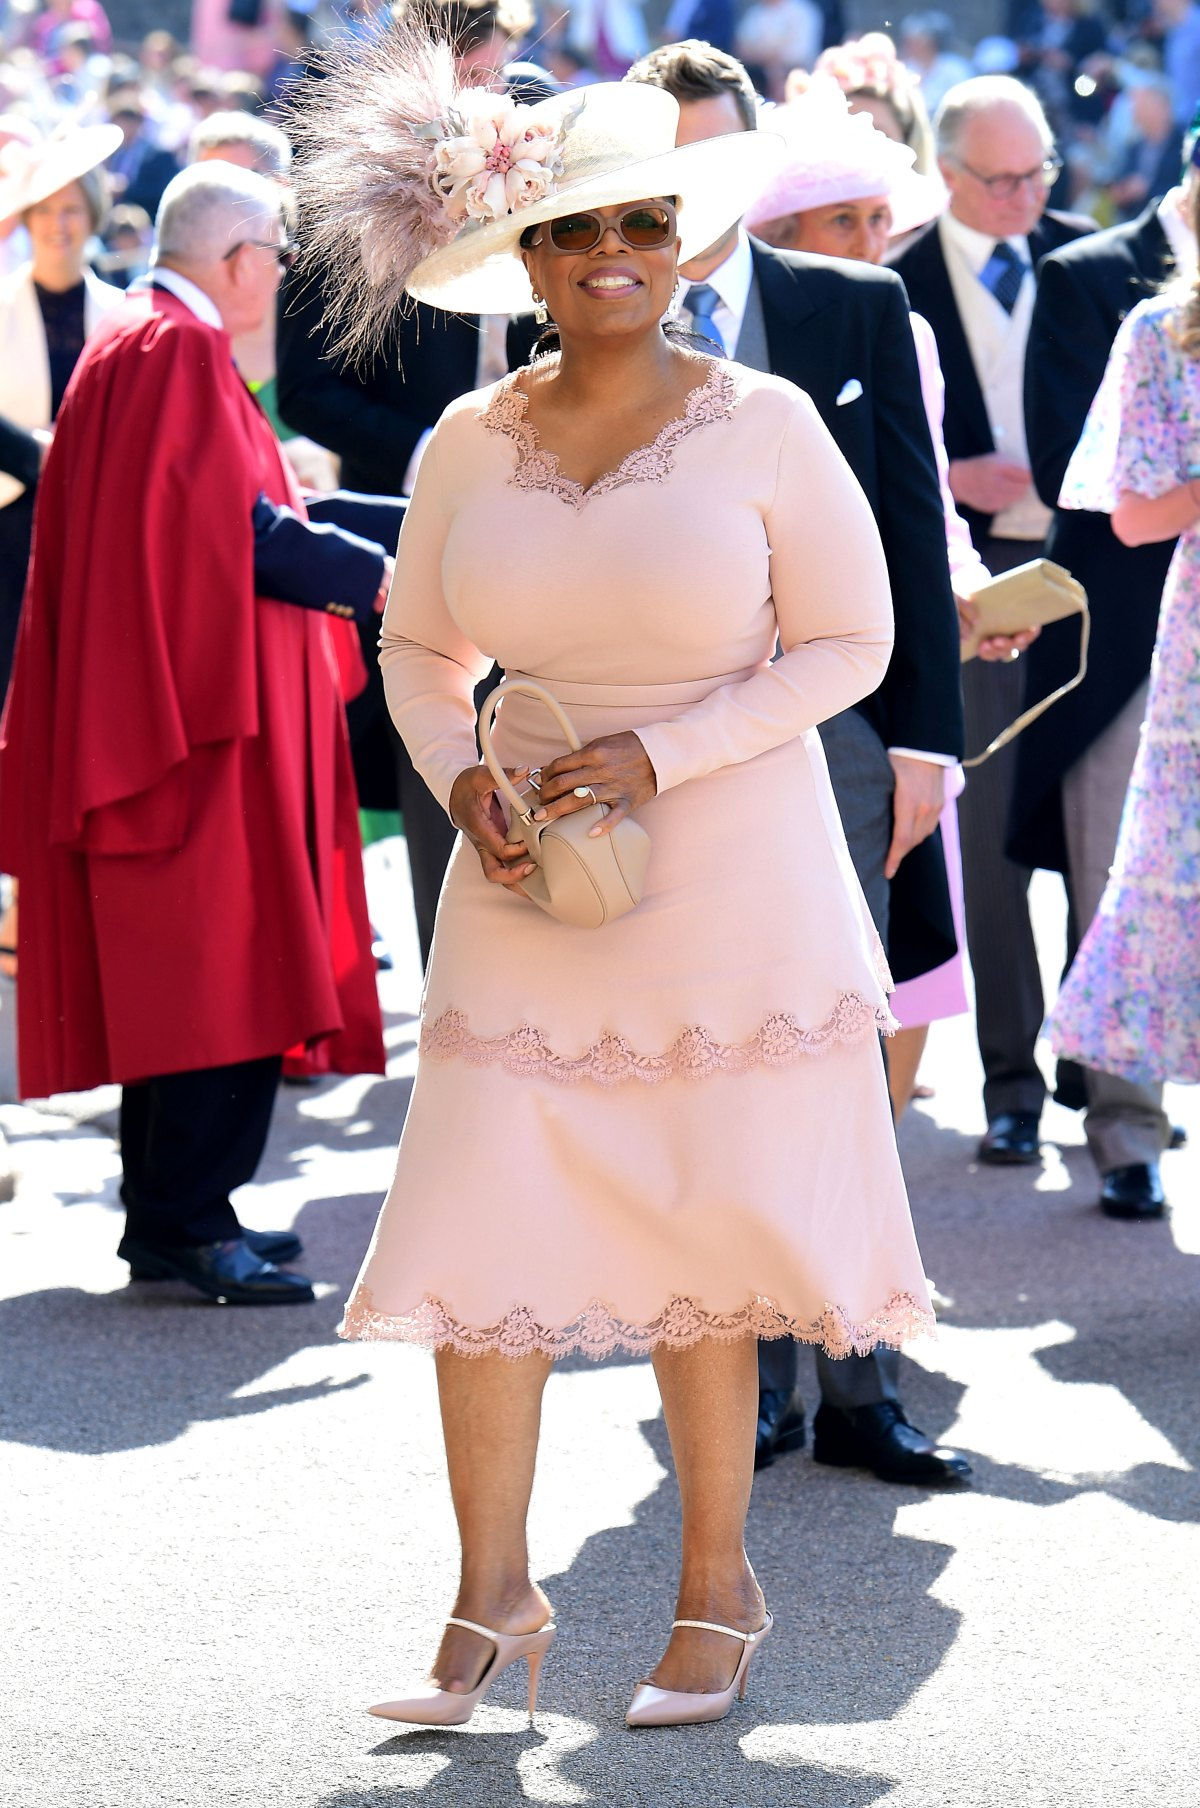 Royal Wedding 2018: What Prince Harry, Meghan Markle, Guests Wore